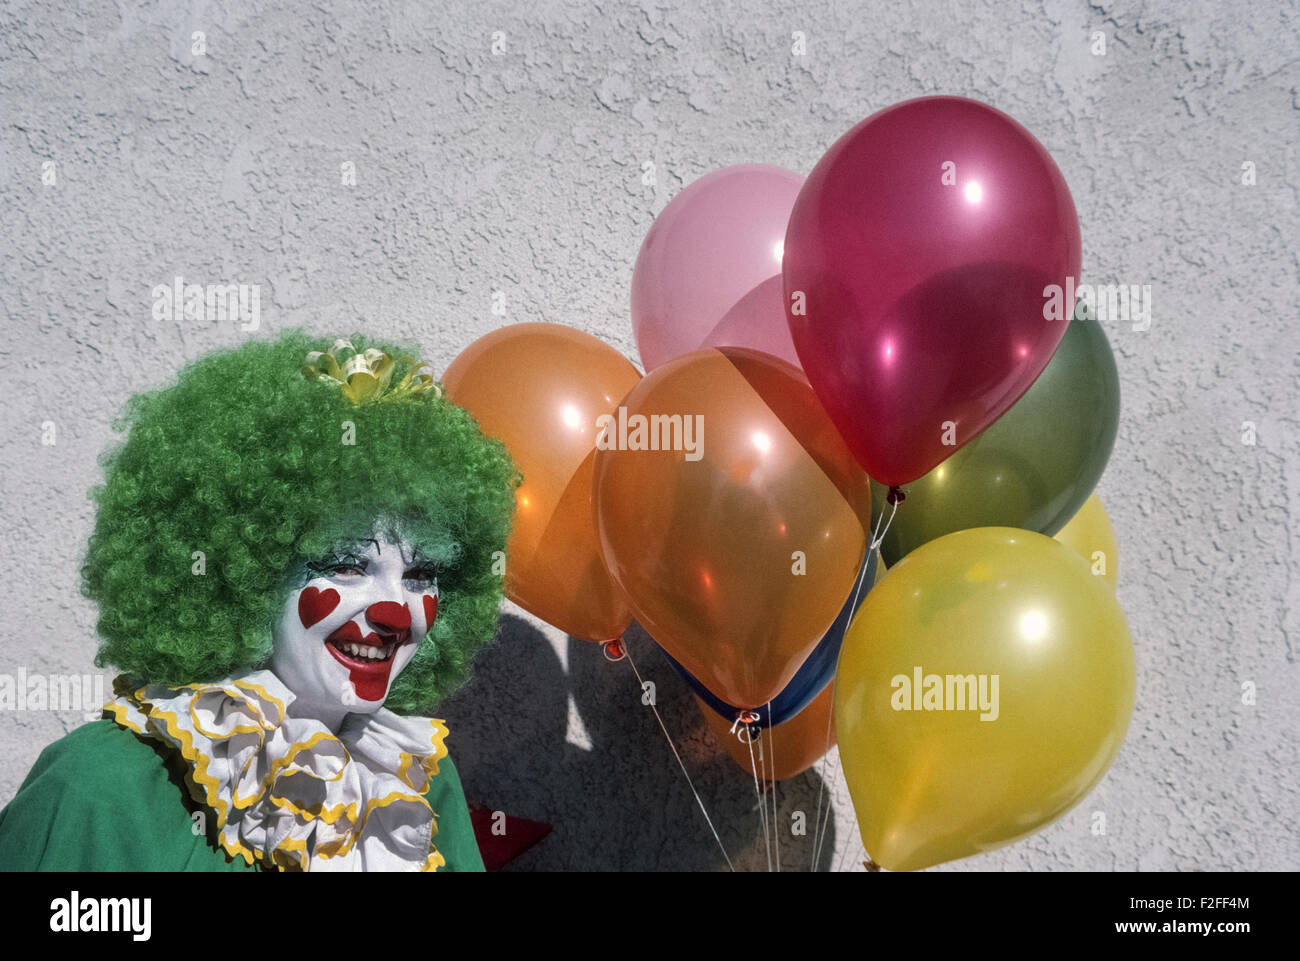 A costumed circus clown with curly green hair and a smiling painted face stands by a gray stucco wall with a bunch - Stock Image